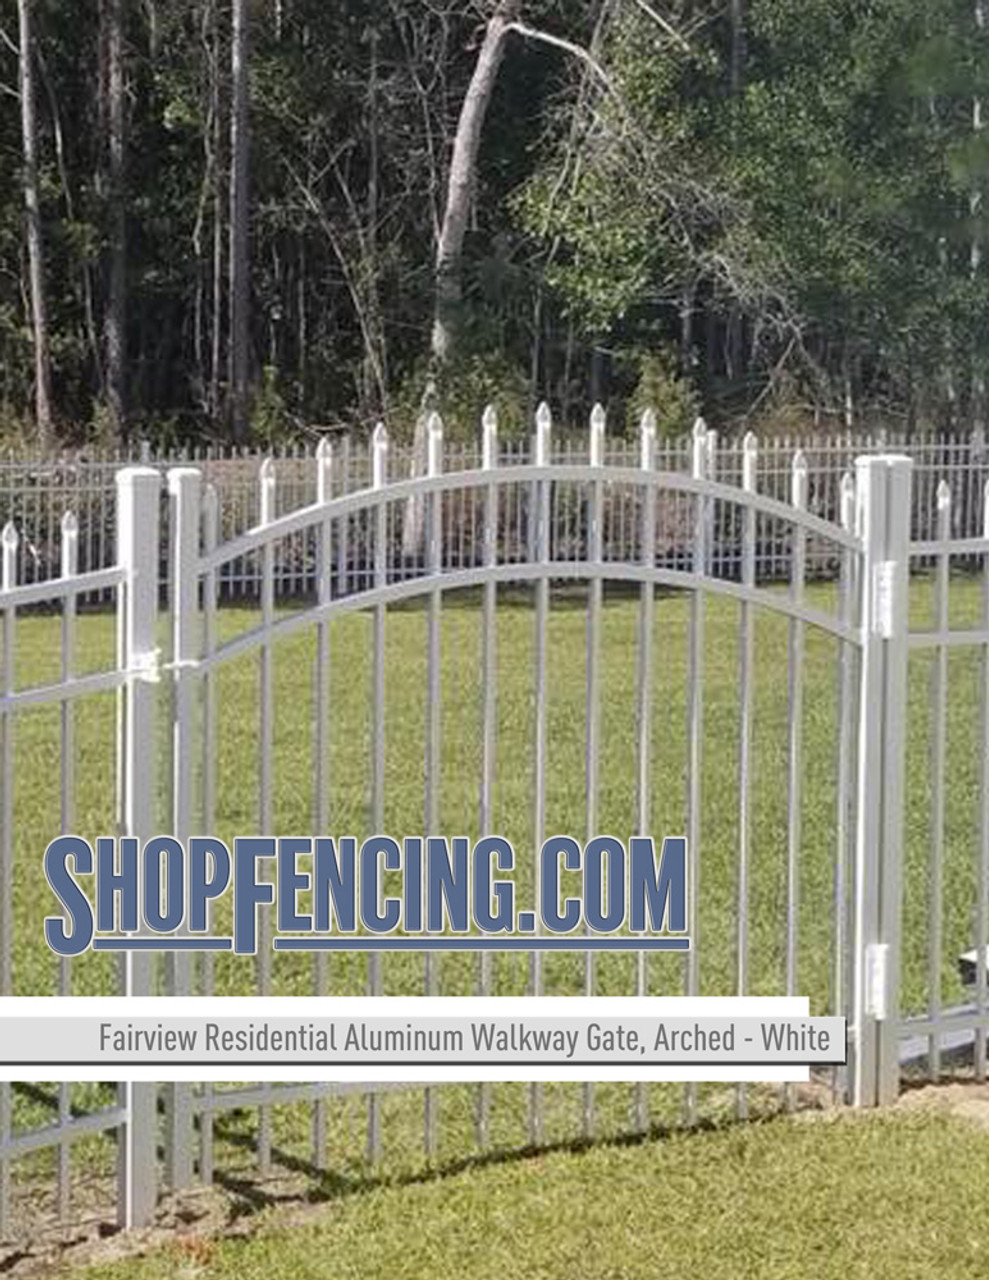 White Residential Fairview Aluminum Walkway Gate From ShopFencing.com